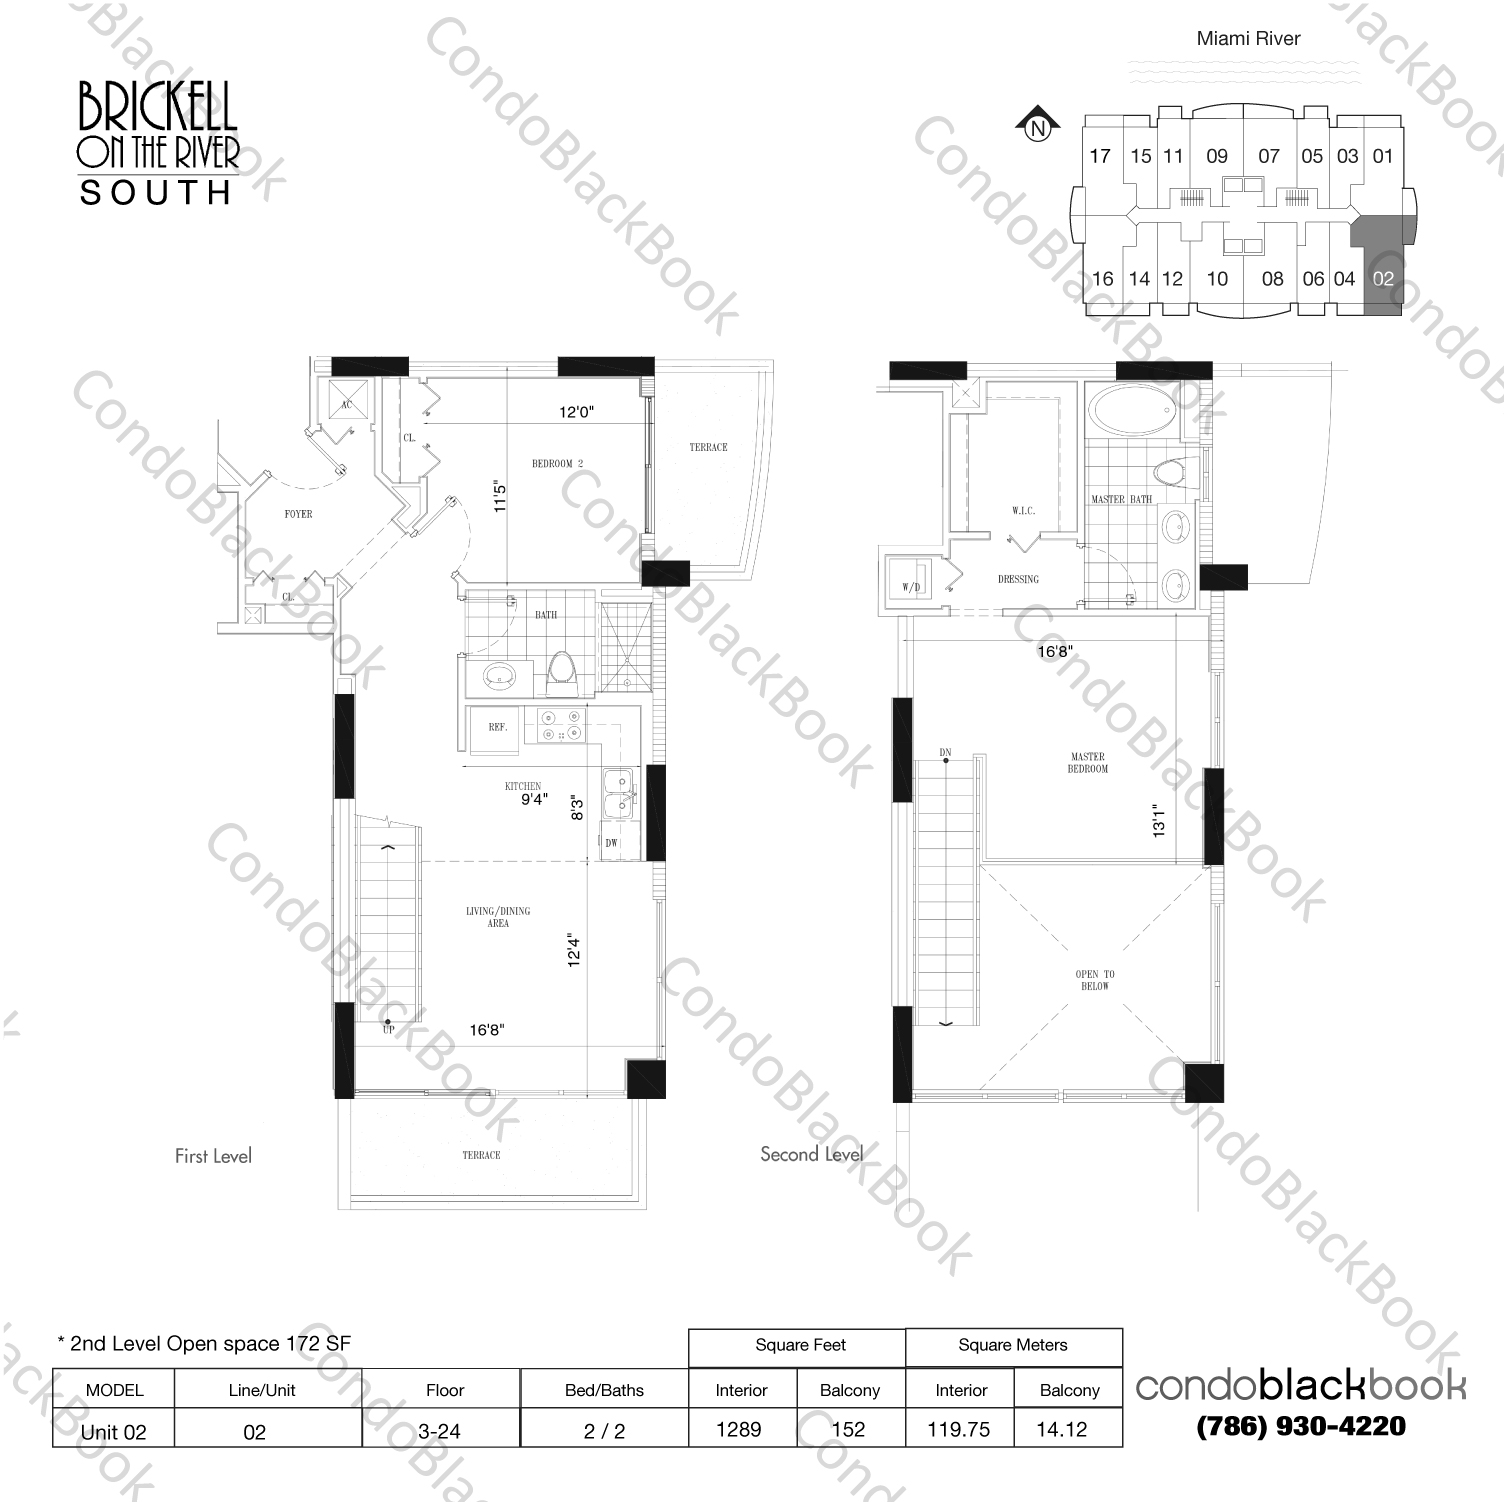 Floor plan for Brickell on the River South Brickell Miami, model Unit 02, line 02, 2 / 2 bedrooms, 1117 sq ft